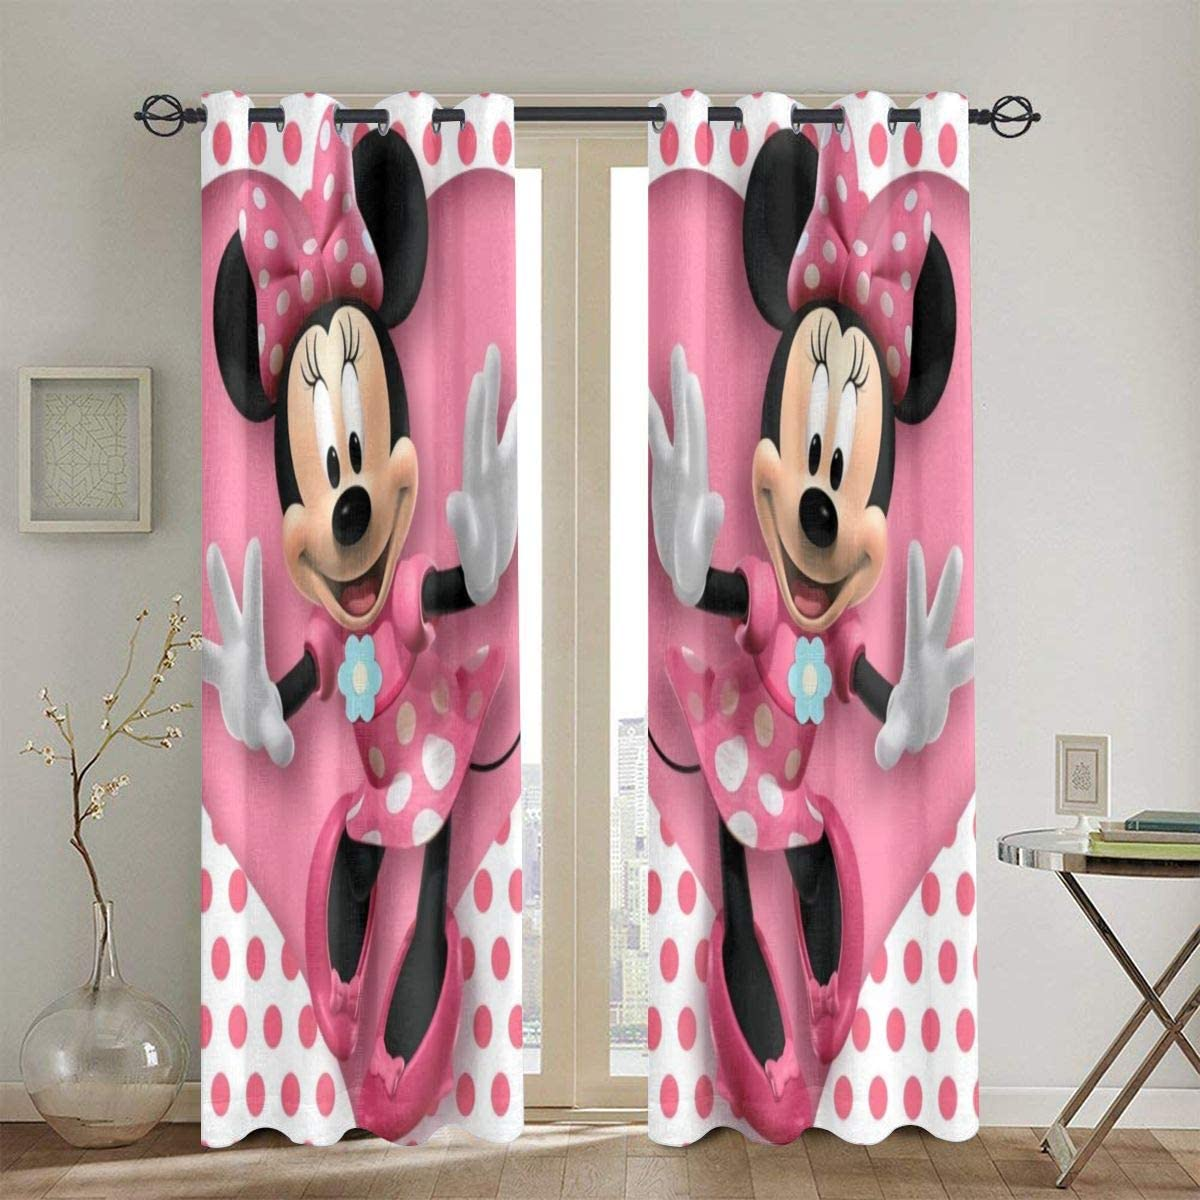 Mickey Mouse Minnie Blackout Curtains Drapes Top Insulation Blackout Curtain Symmetrical 2 Panels for Bedroom Living Windows Childrens Room,52w X 72l Inches